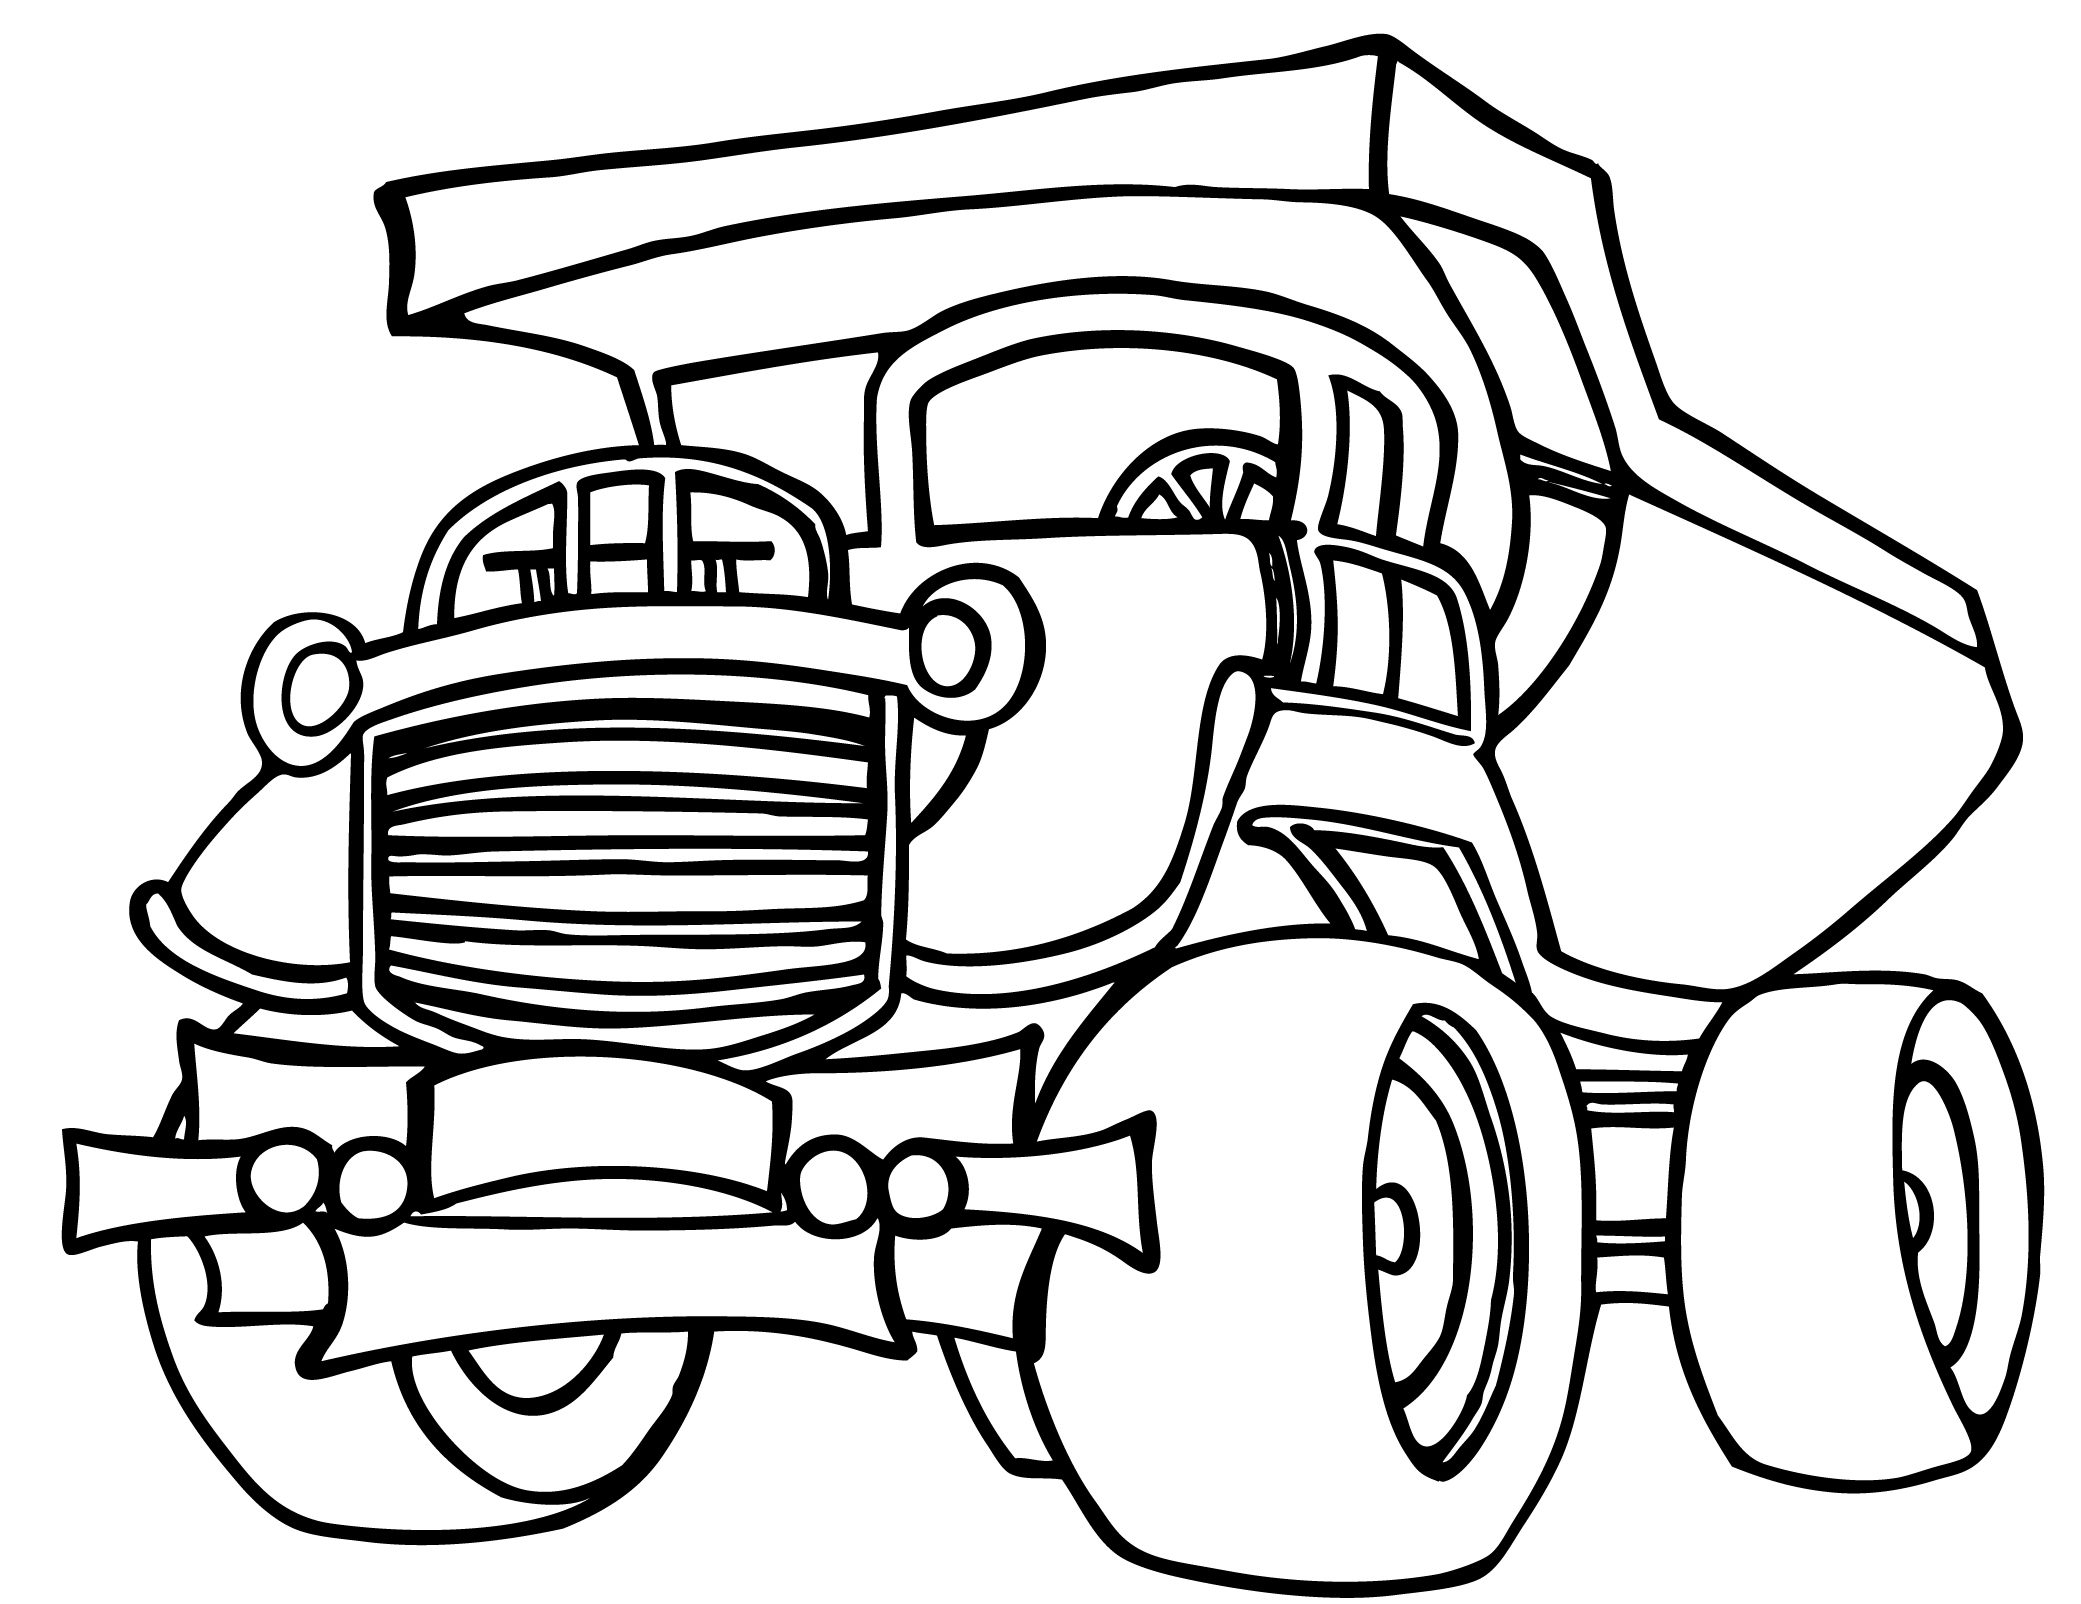 Truck Line Drawing At Getdrawings Com Free For Personal Use Truck